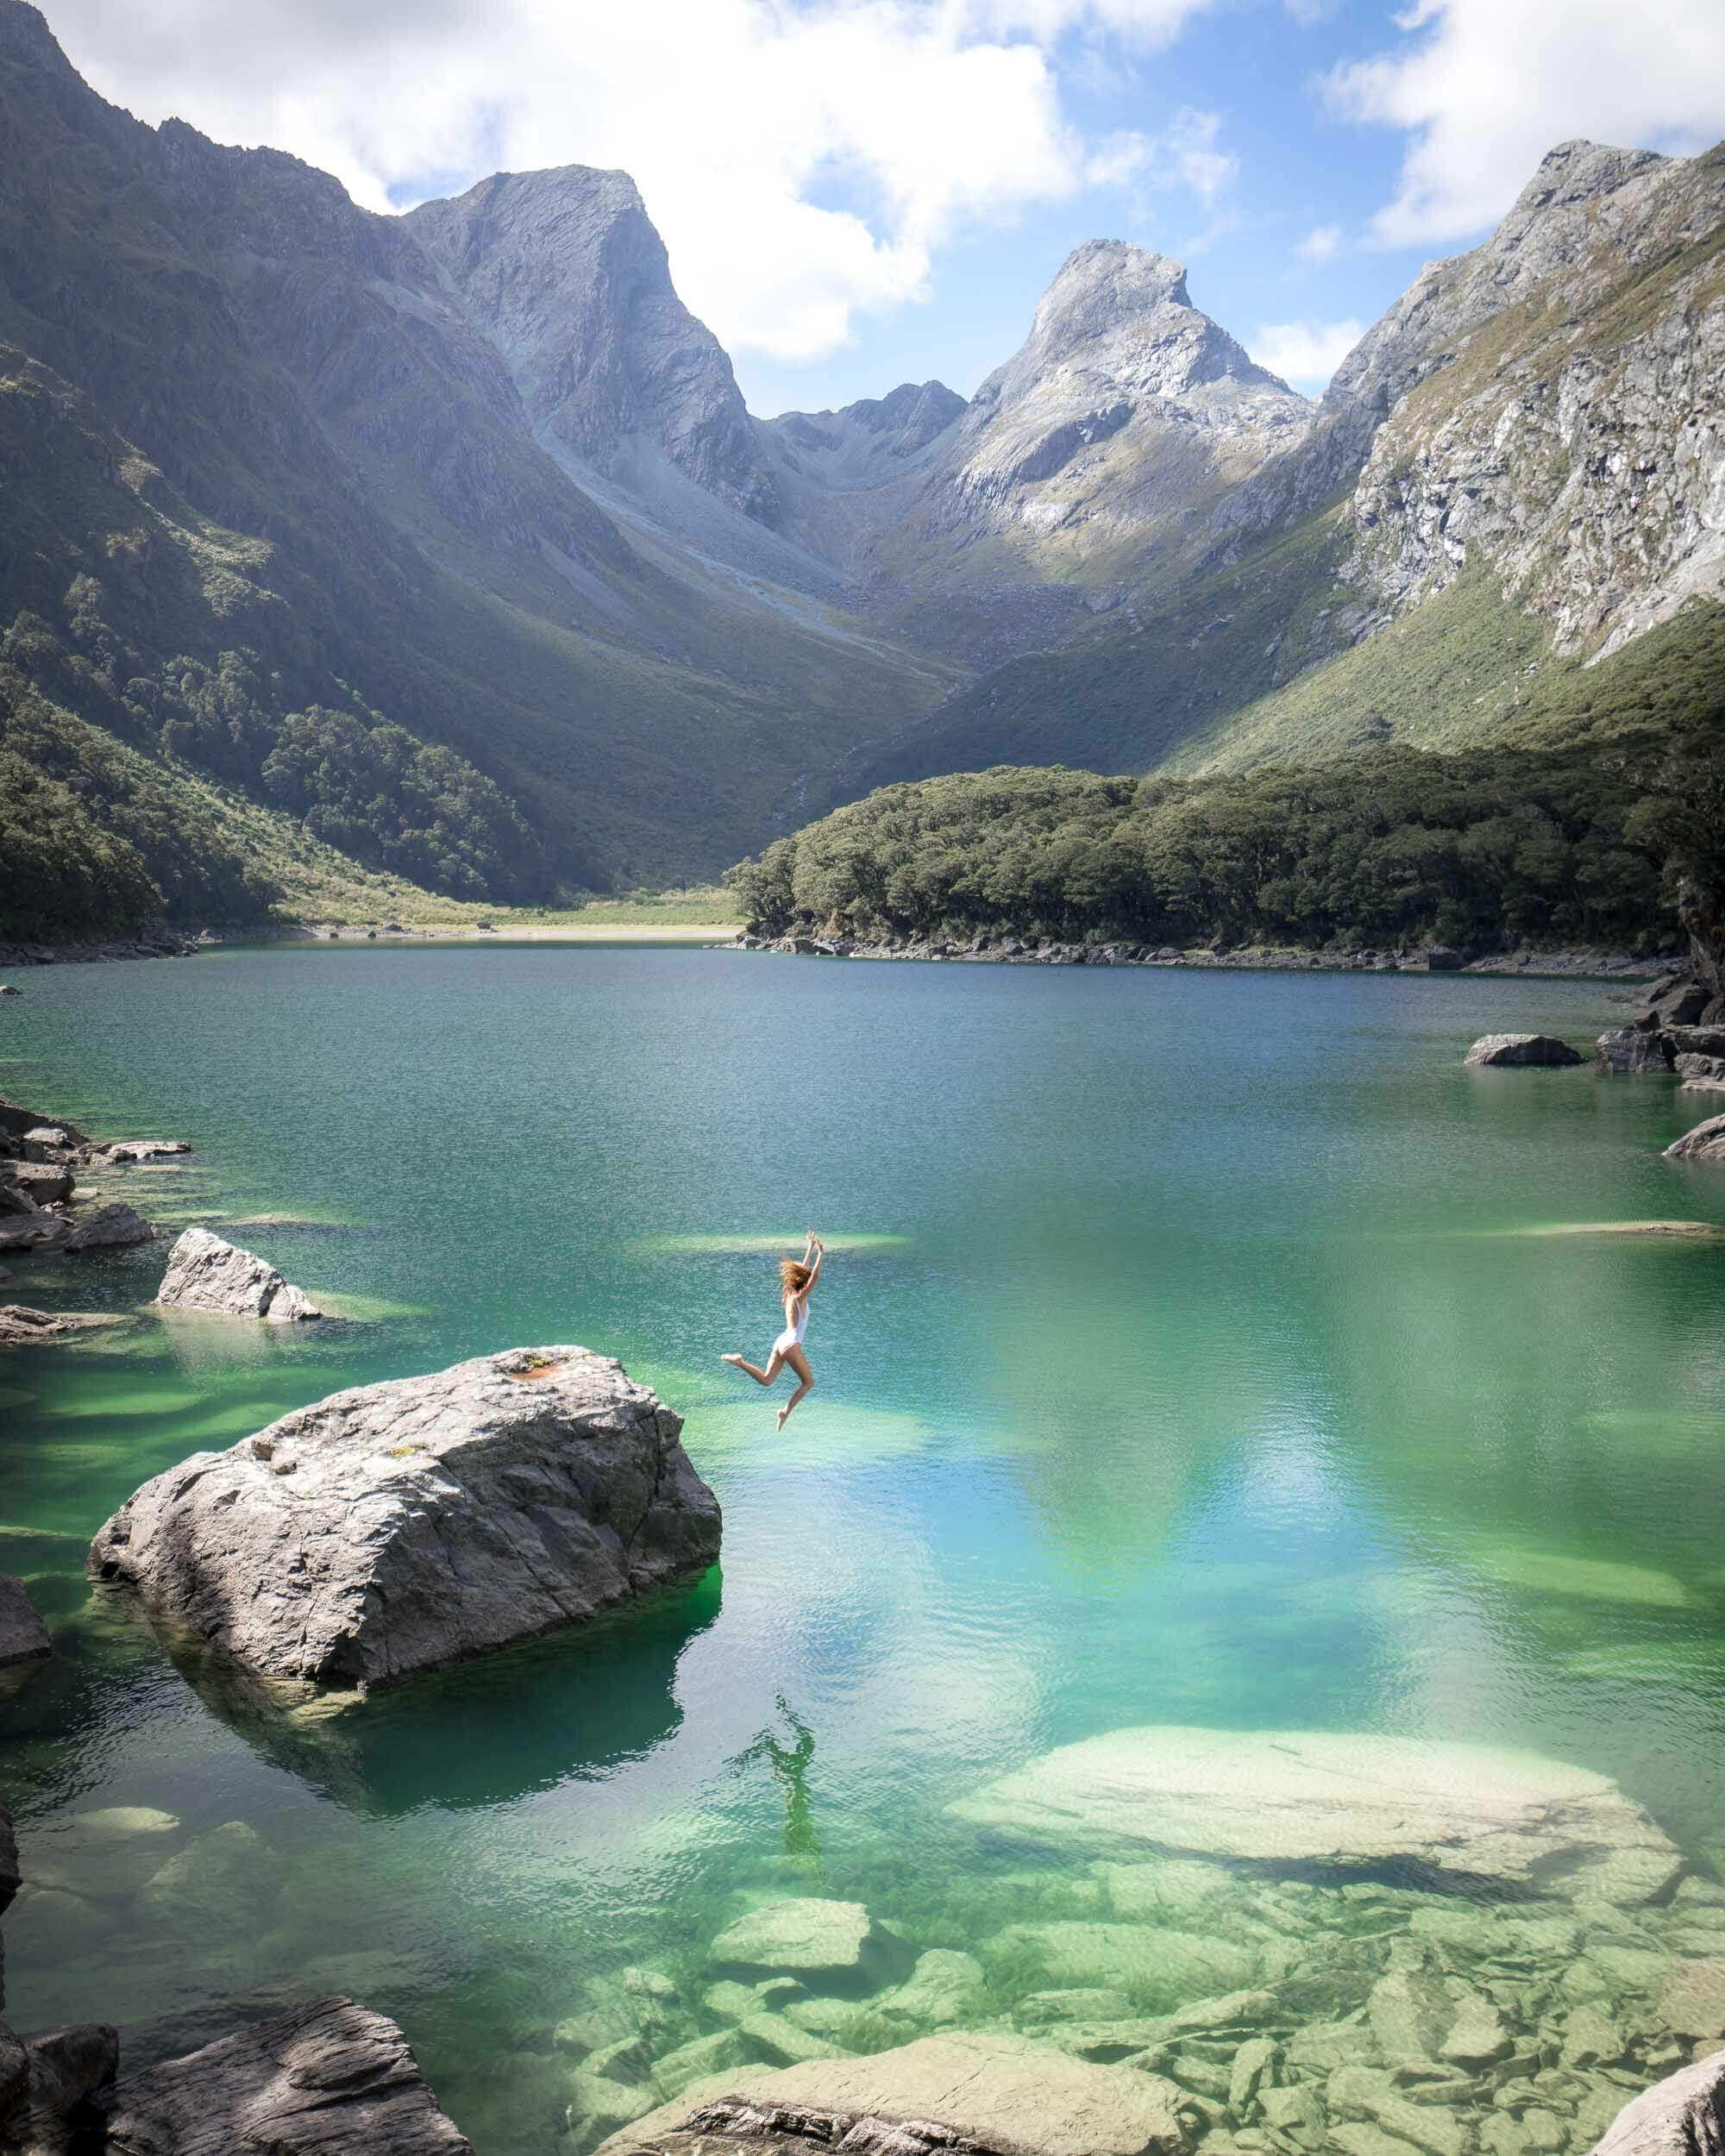 Lake Mackenzie is part of the famous Routeburn Track in New Zealand.